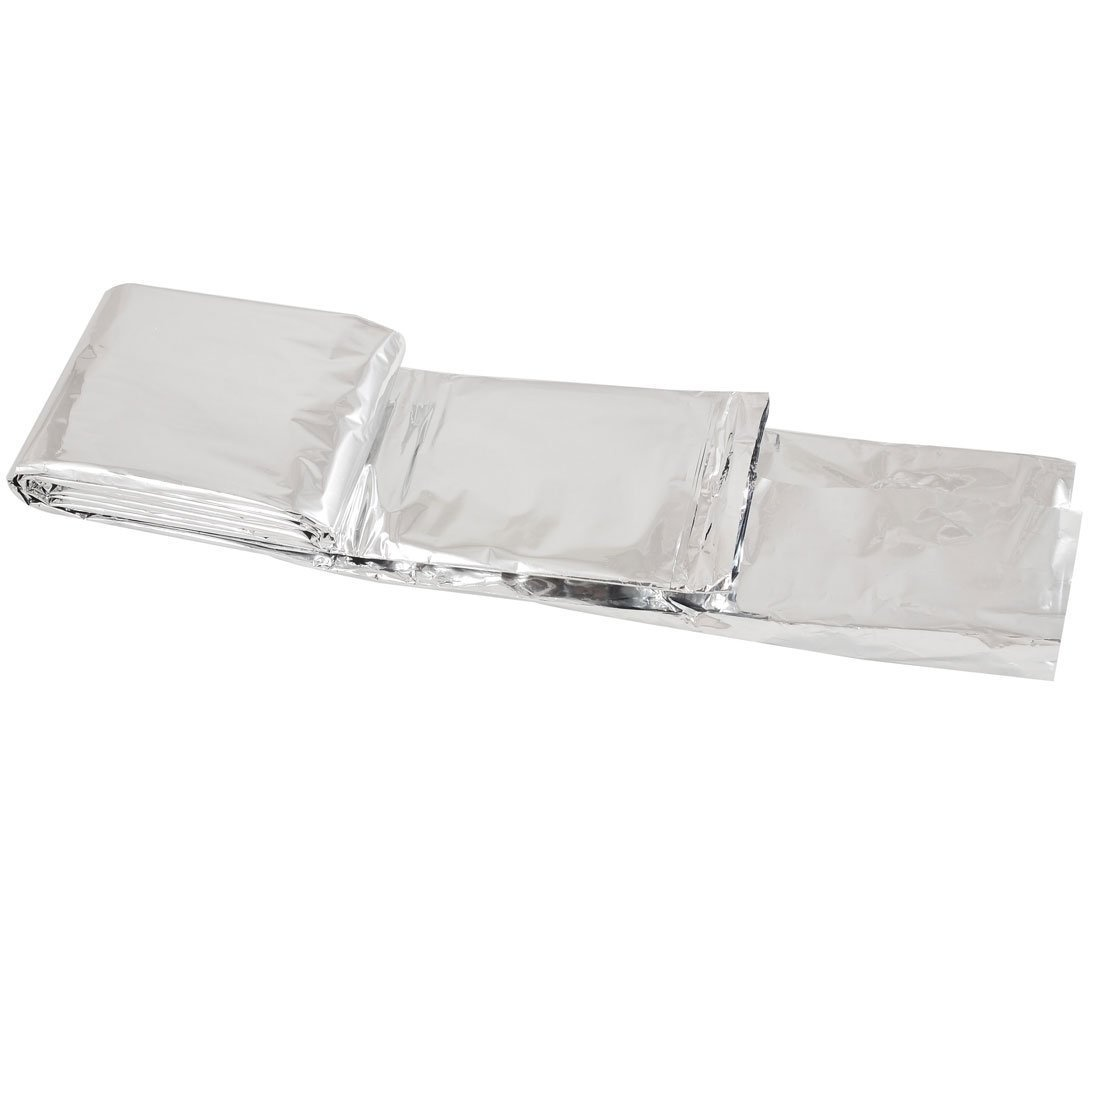 Outdoor Emergency Rescue Solar Thermal Space Mylar Blanket 130cm x 210cm